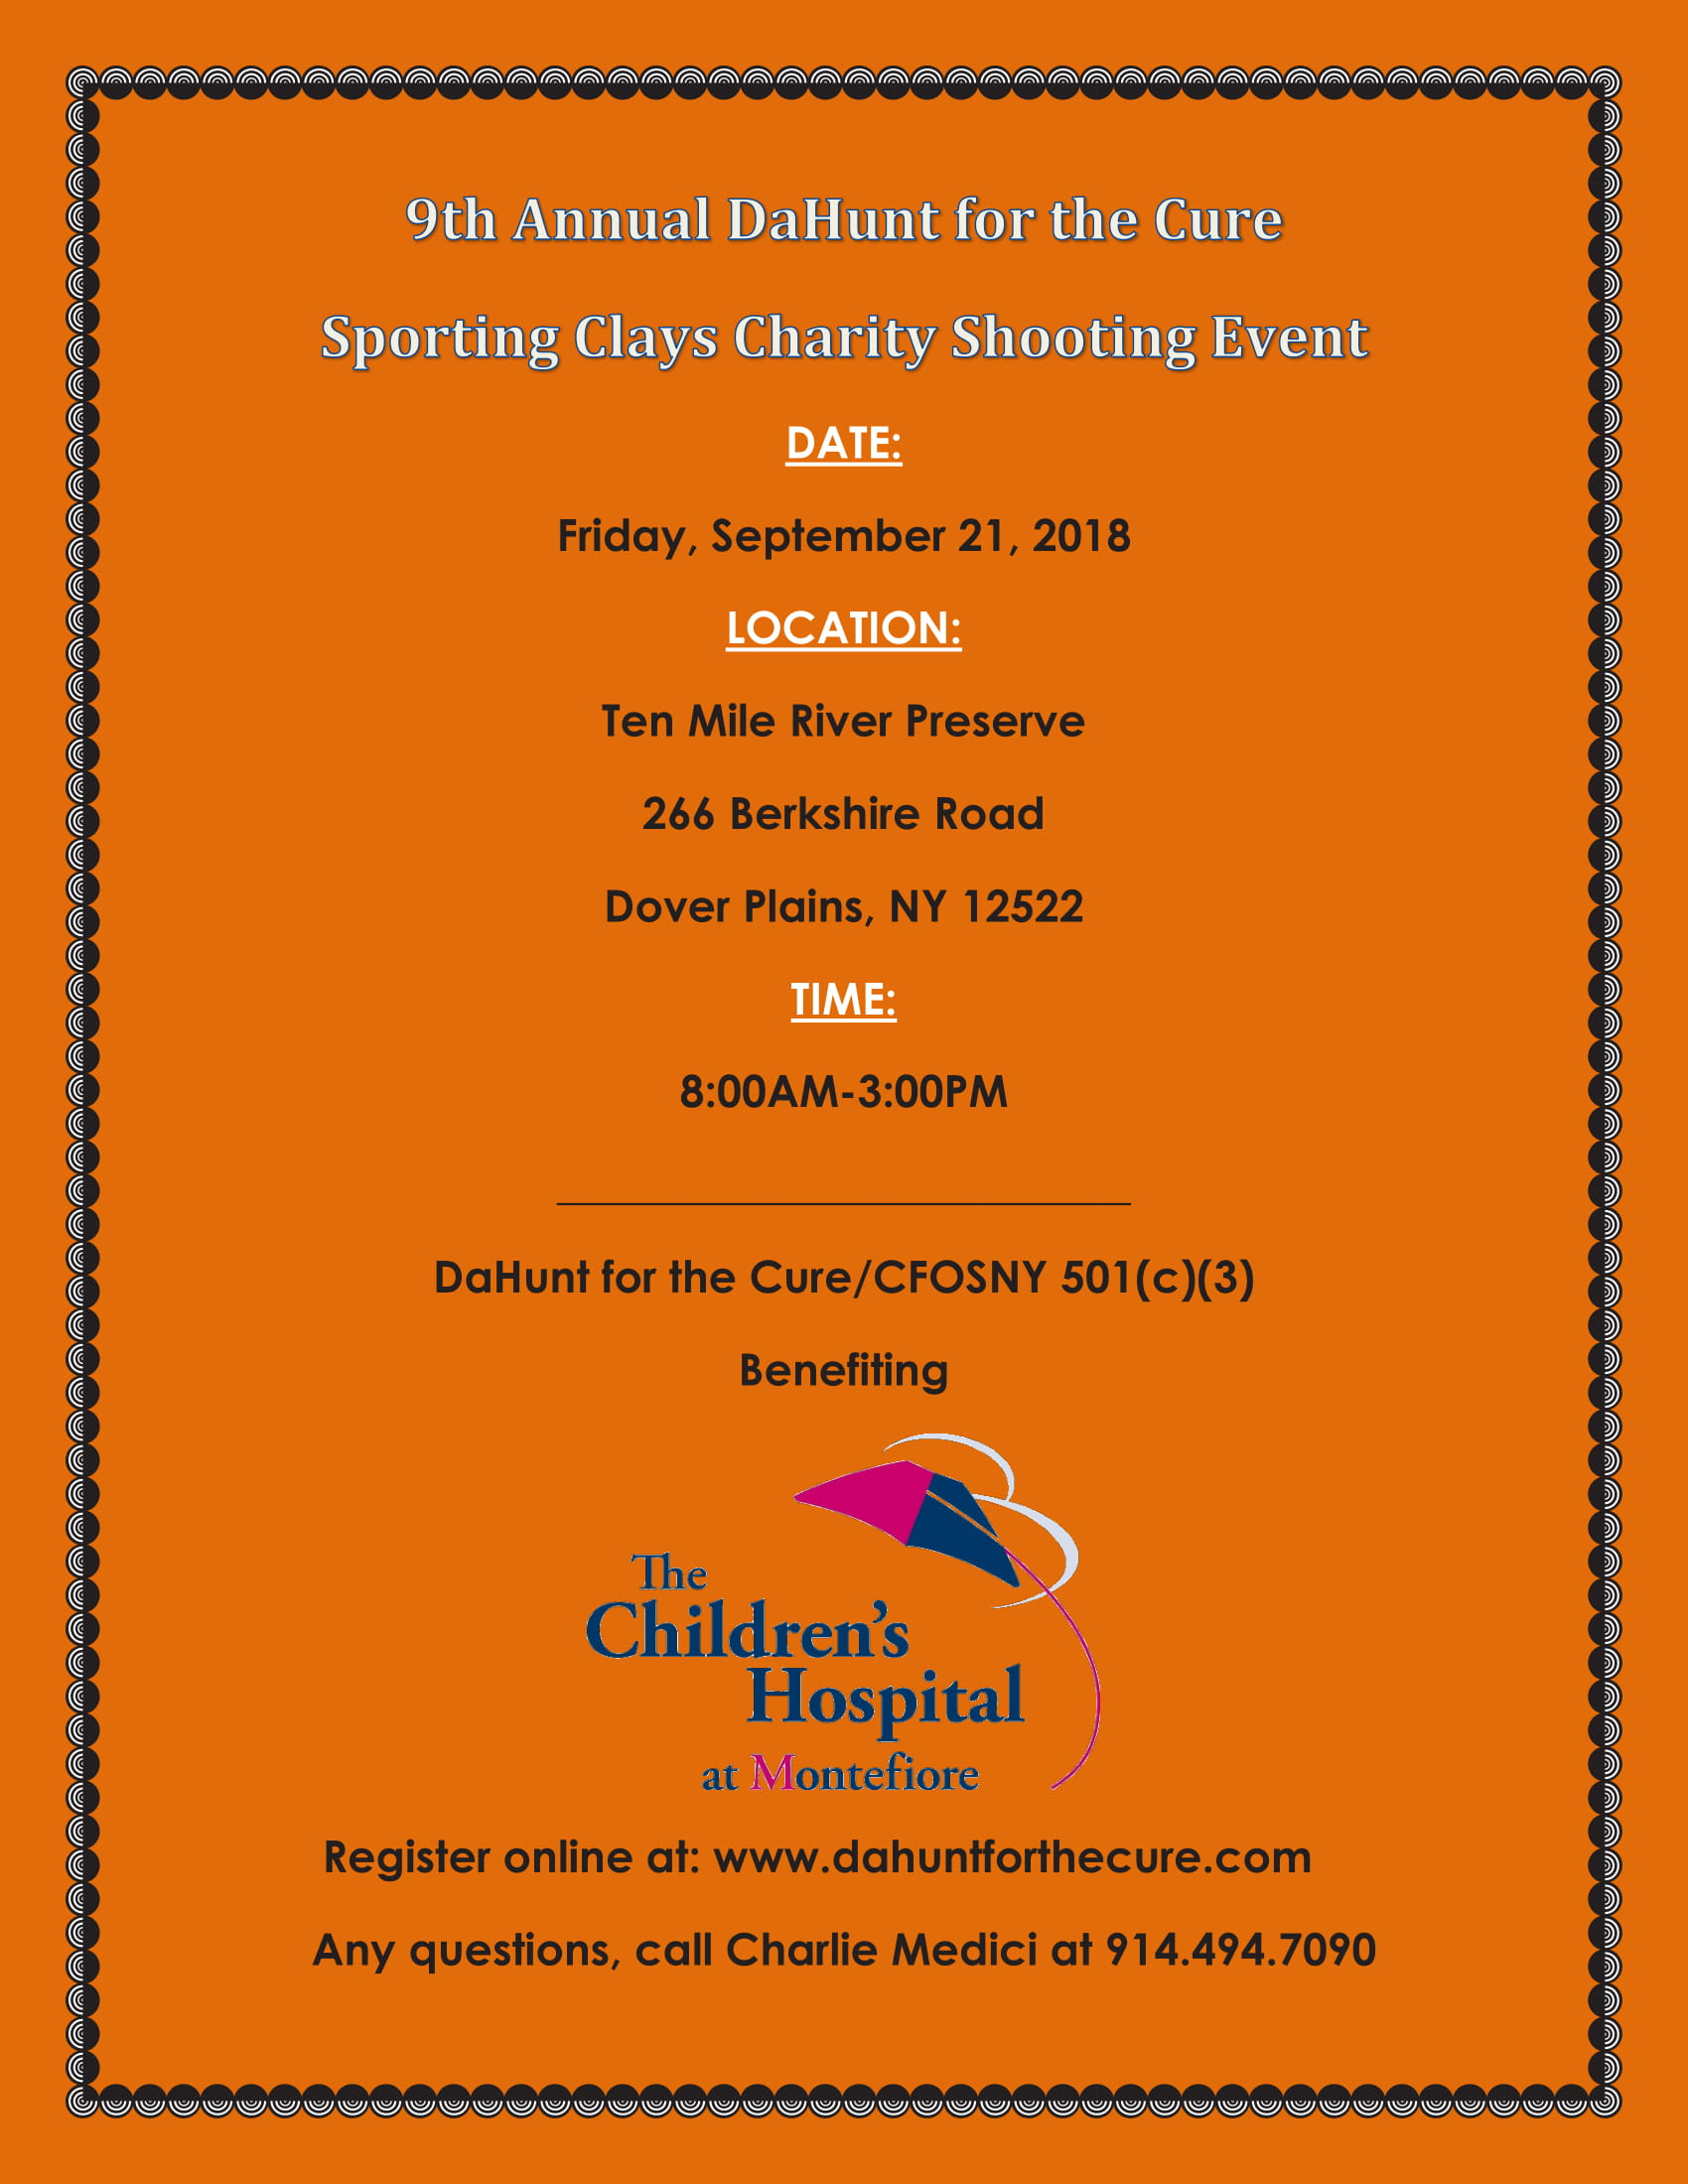 2018 DaHunt for the 9th Annual Sporting Clays Charity Shooting Event